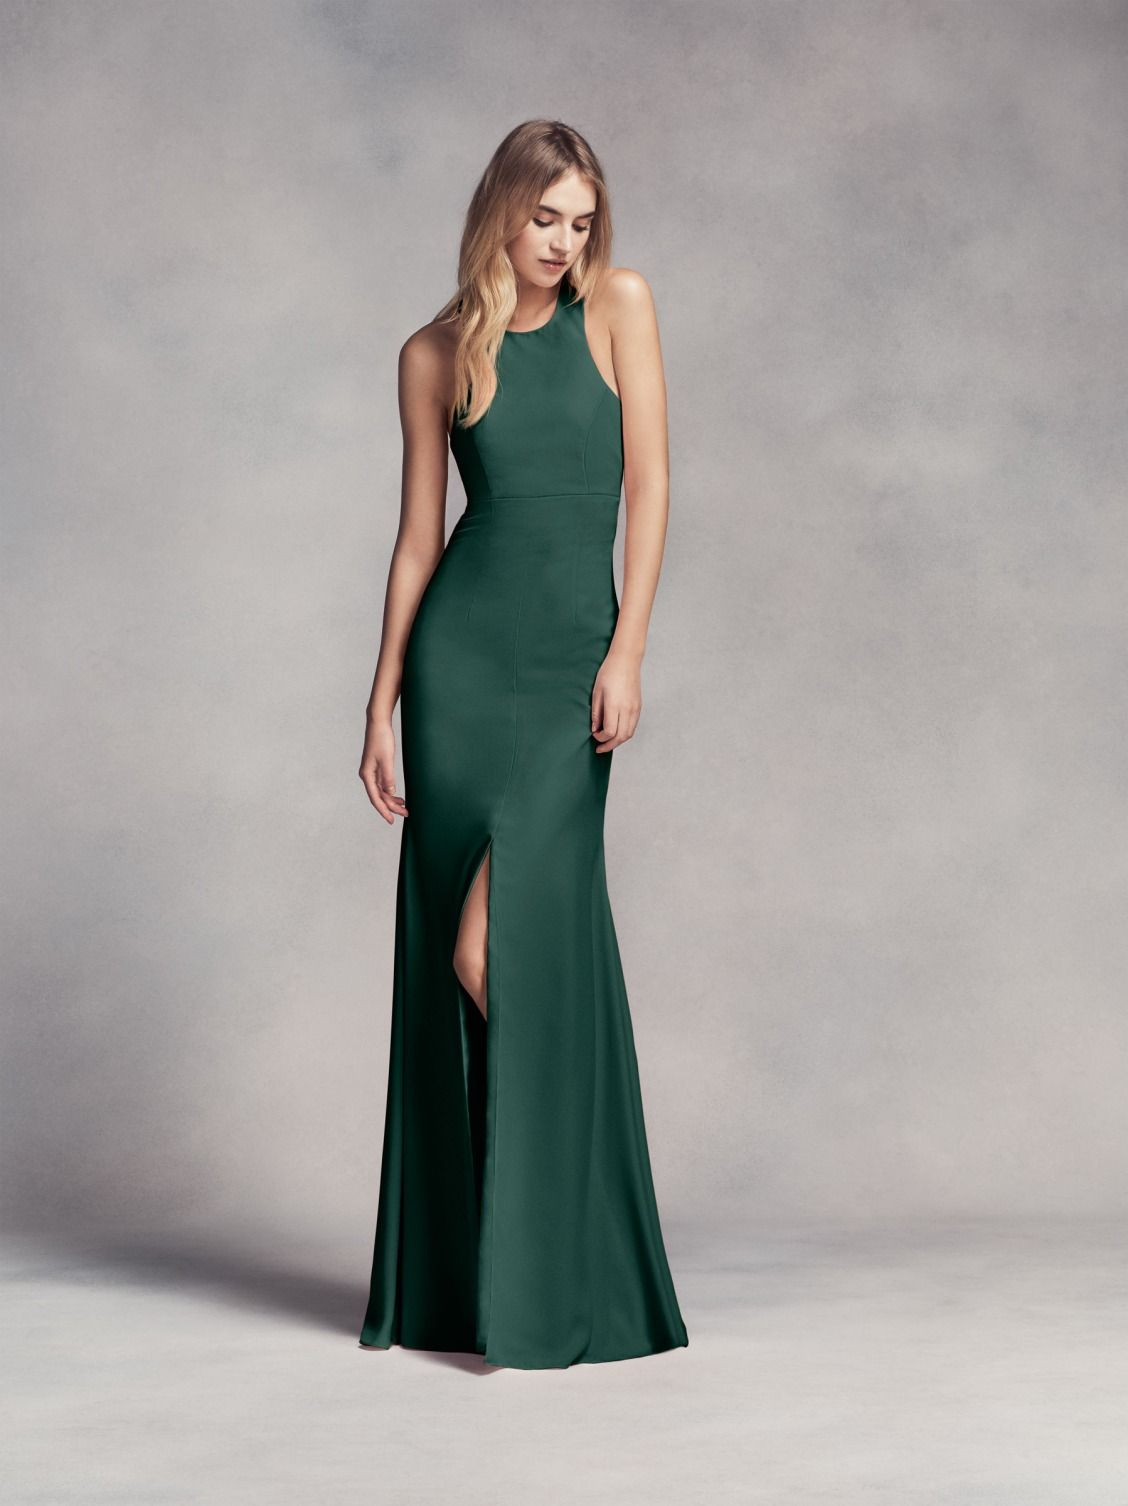 2a189ad8bc Long Halter Bridesmaid Dress with Skirt Slit in Forest Green by WHITE by Vera  Wang available at David s Bridal